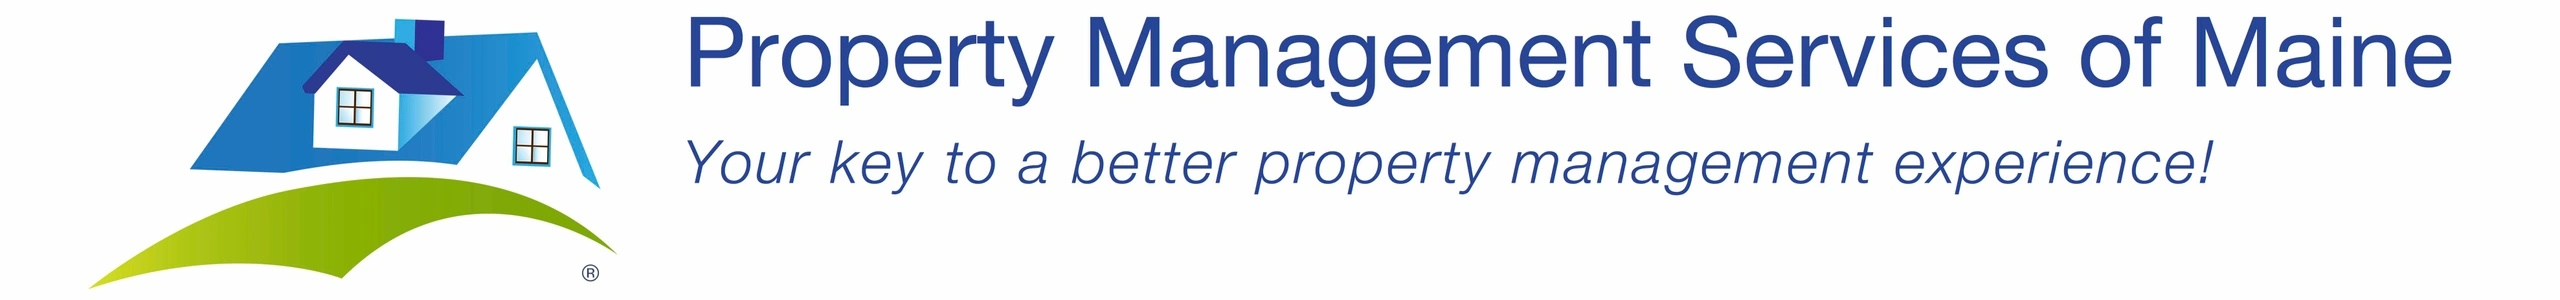 Property Management Services of Maine